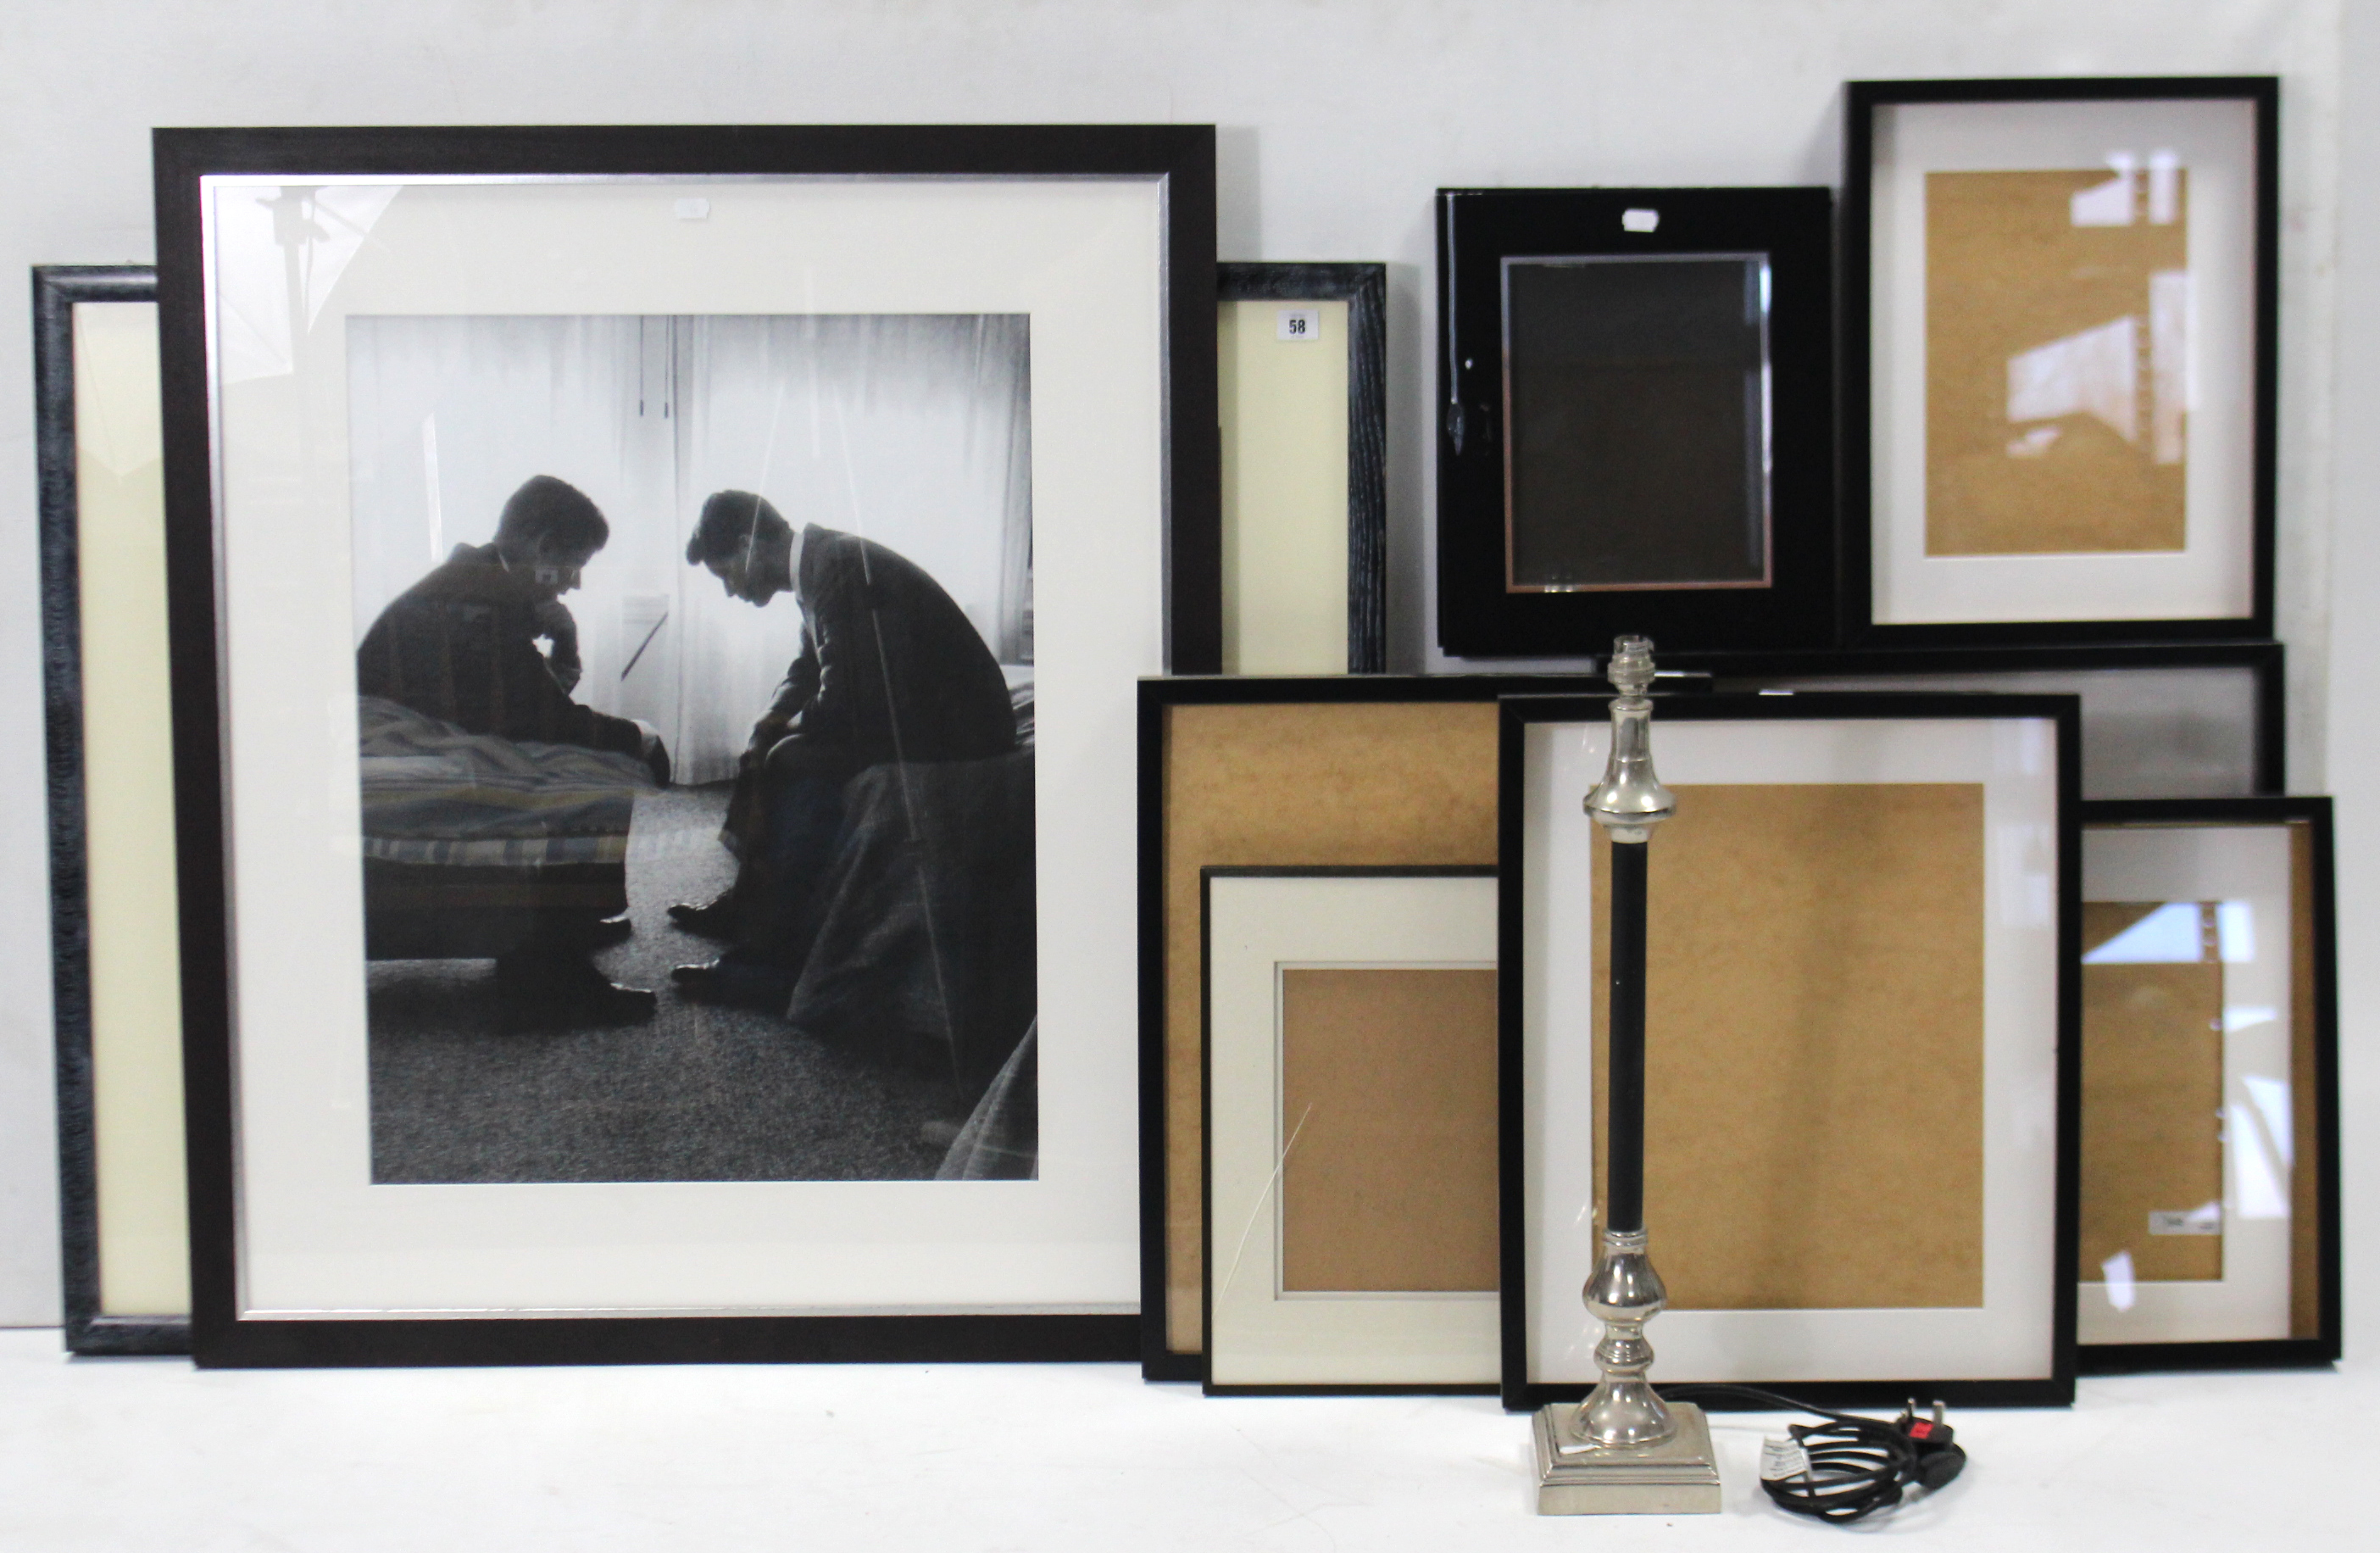 Lot 58 - A modern ceiling light fitting; a black-finish table lamp; & various decorative pictures & picture